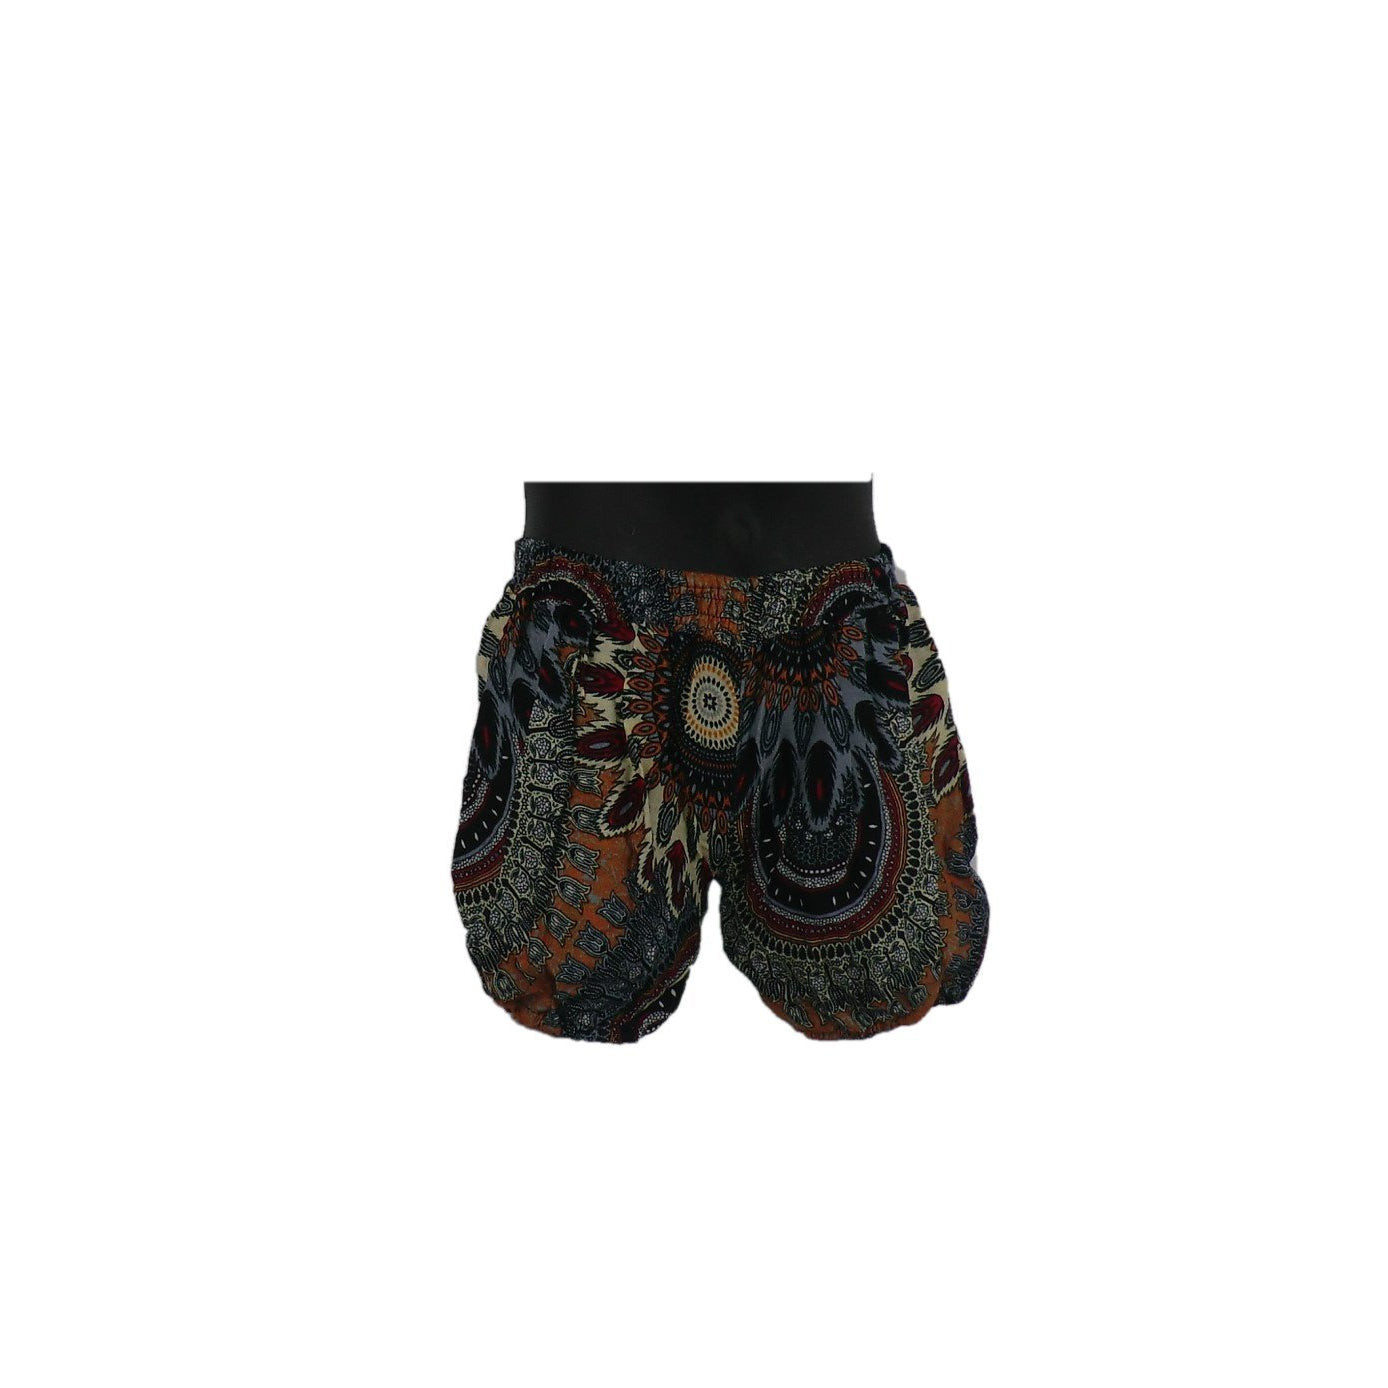 Multi Coloured Harem Pants 0 - 6mnths - Matico